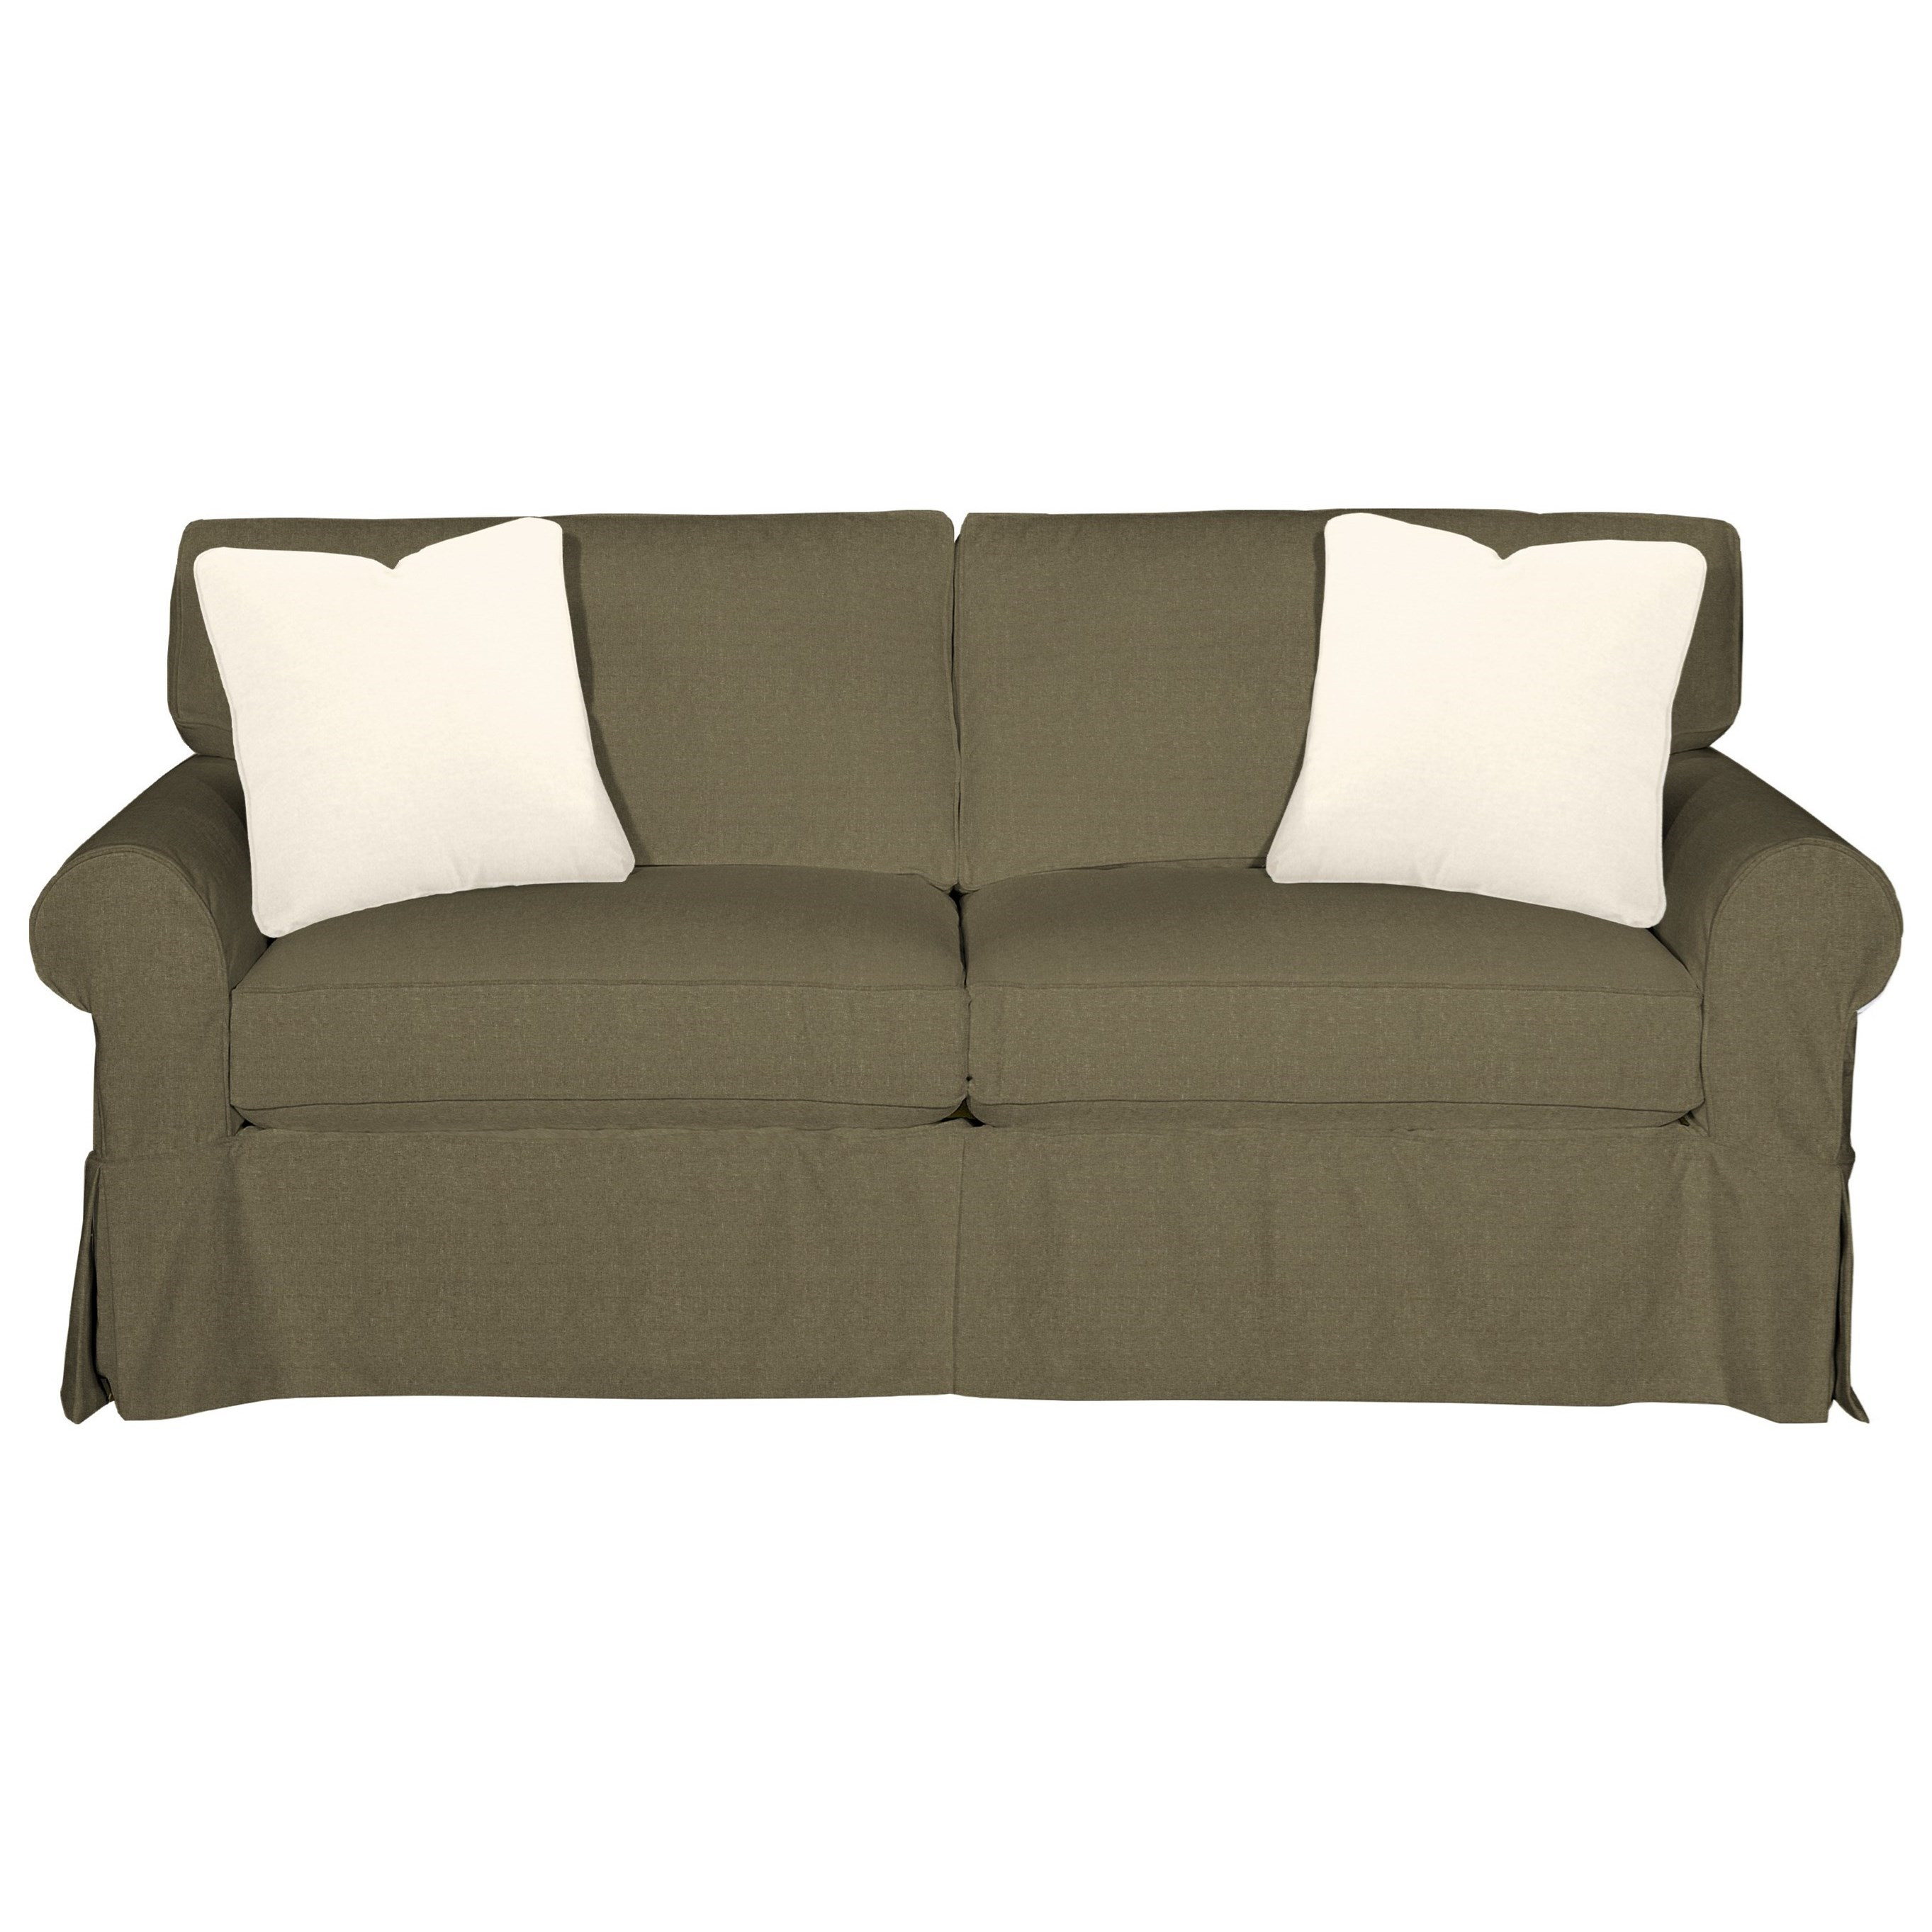 9228 Sleeper Sofa w/ Innerspring Mattress by Craftmaster at Baer's Furniture